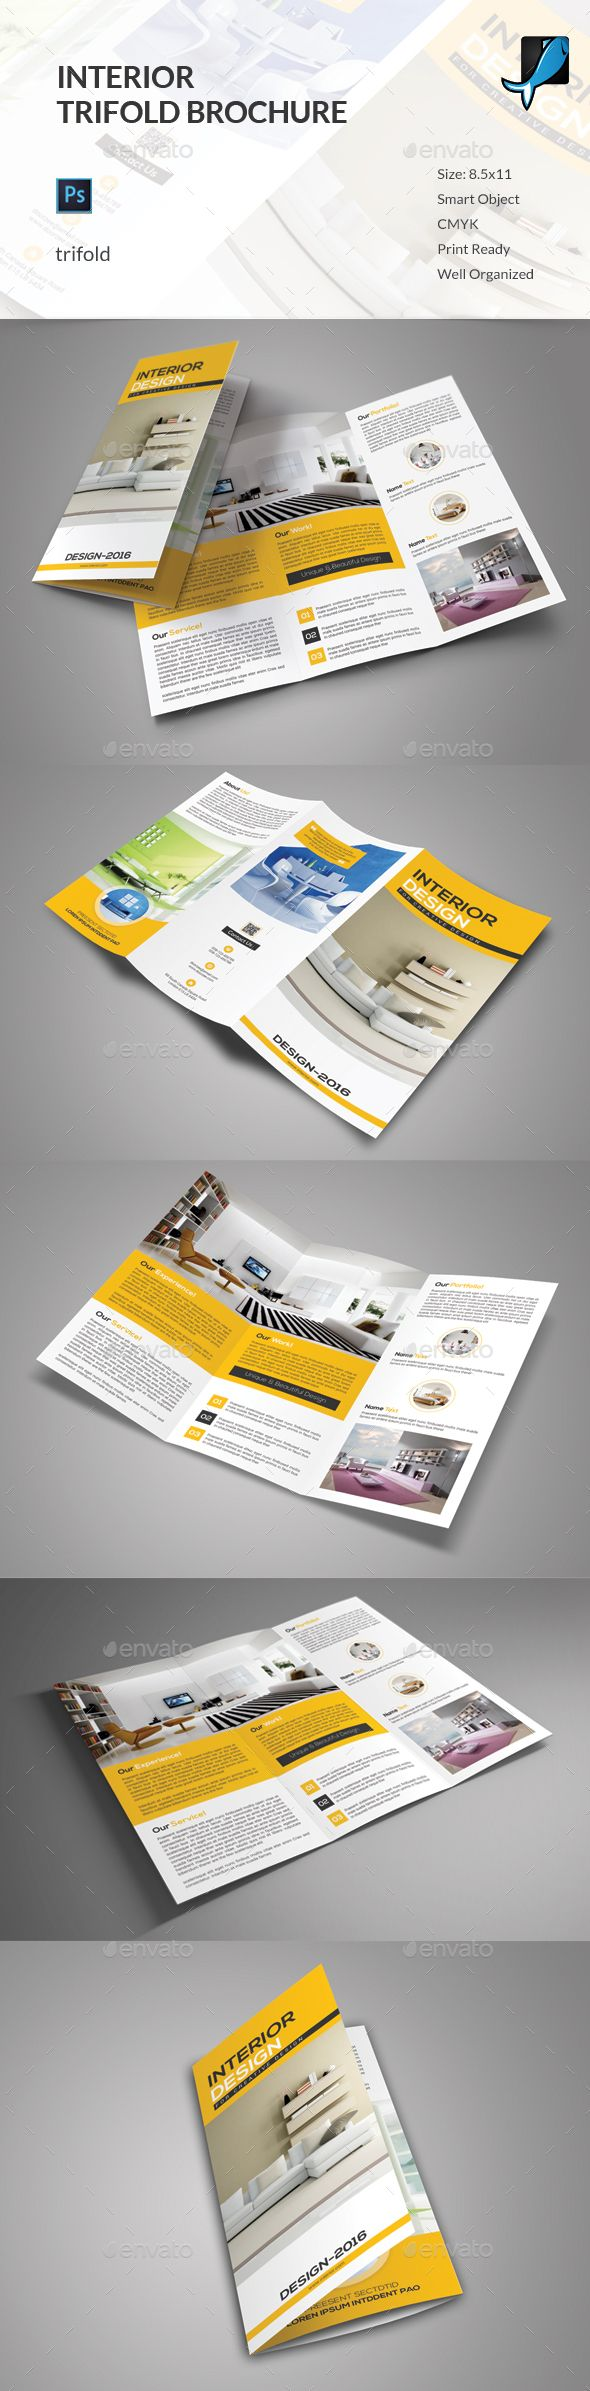 Interior Trifold Brochure - Corporate Brochures